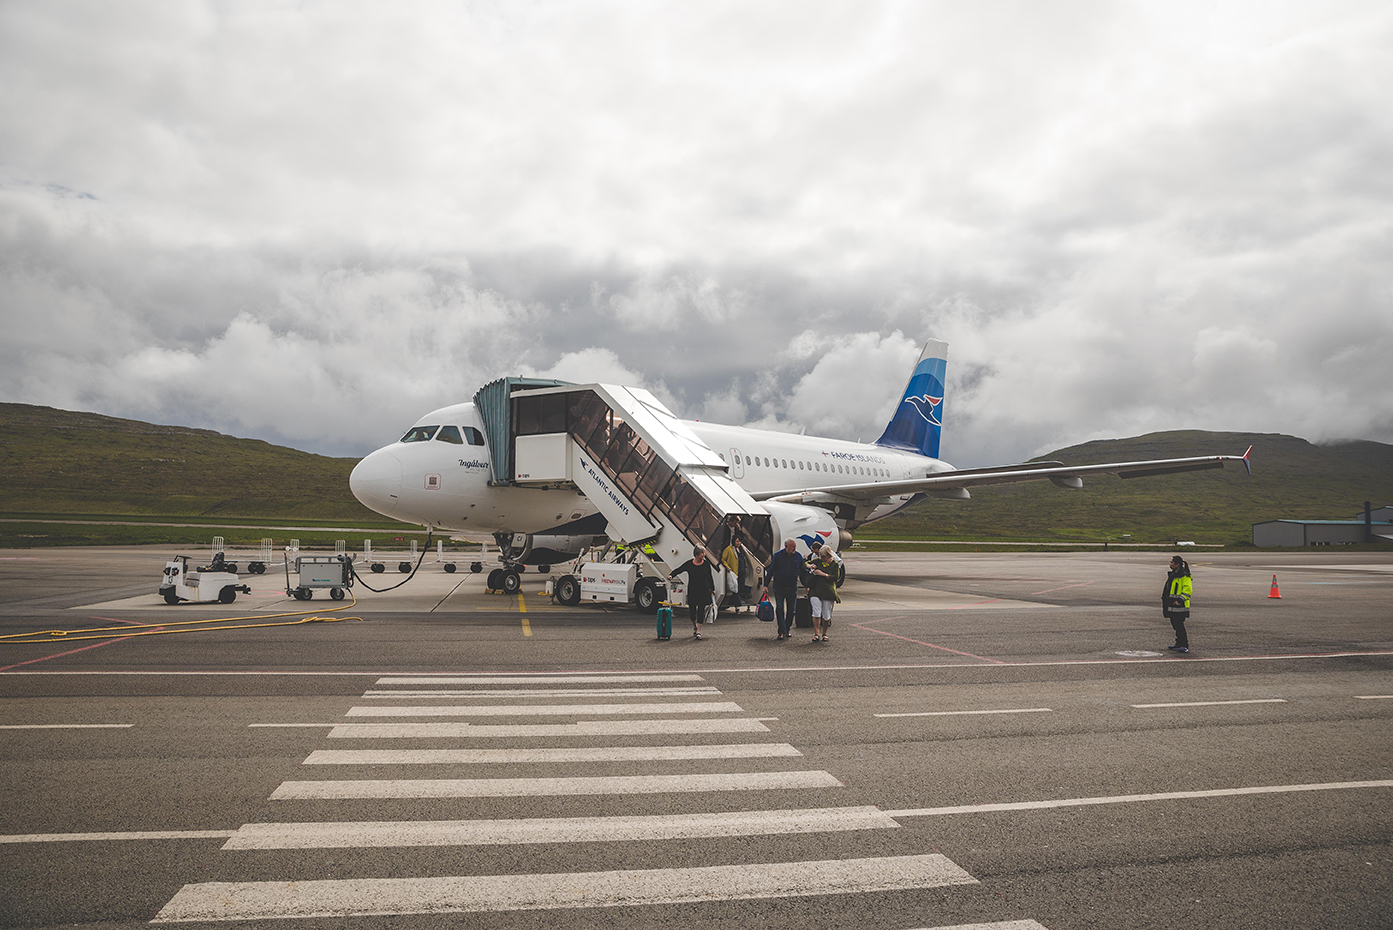 FaroeIslands_Day1_22-6-17_TAL-8.jpg